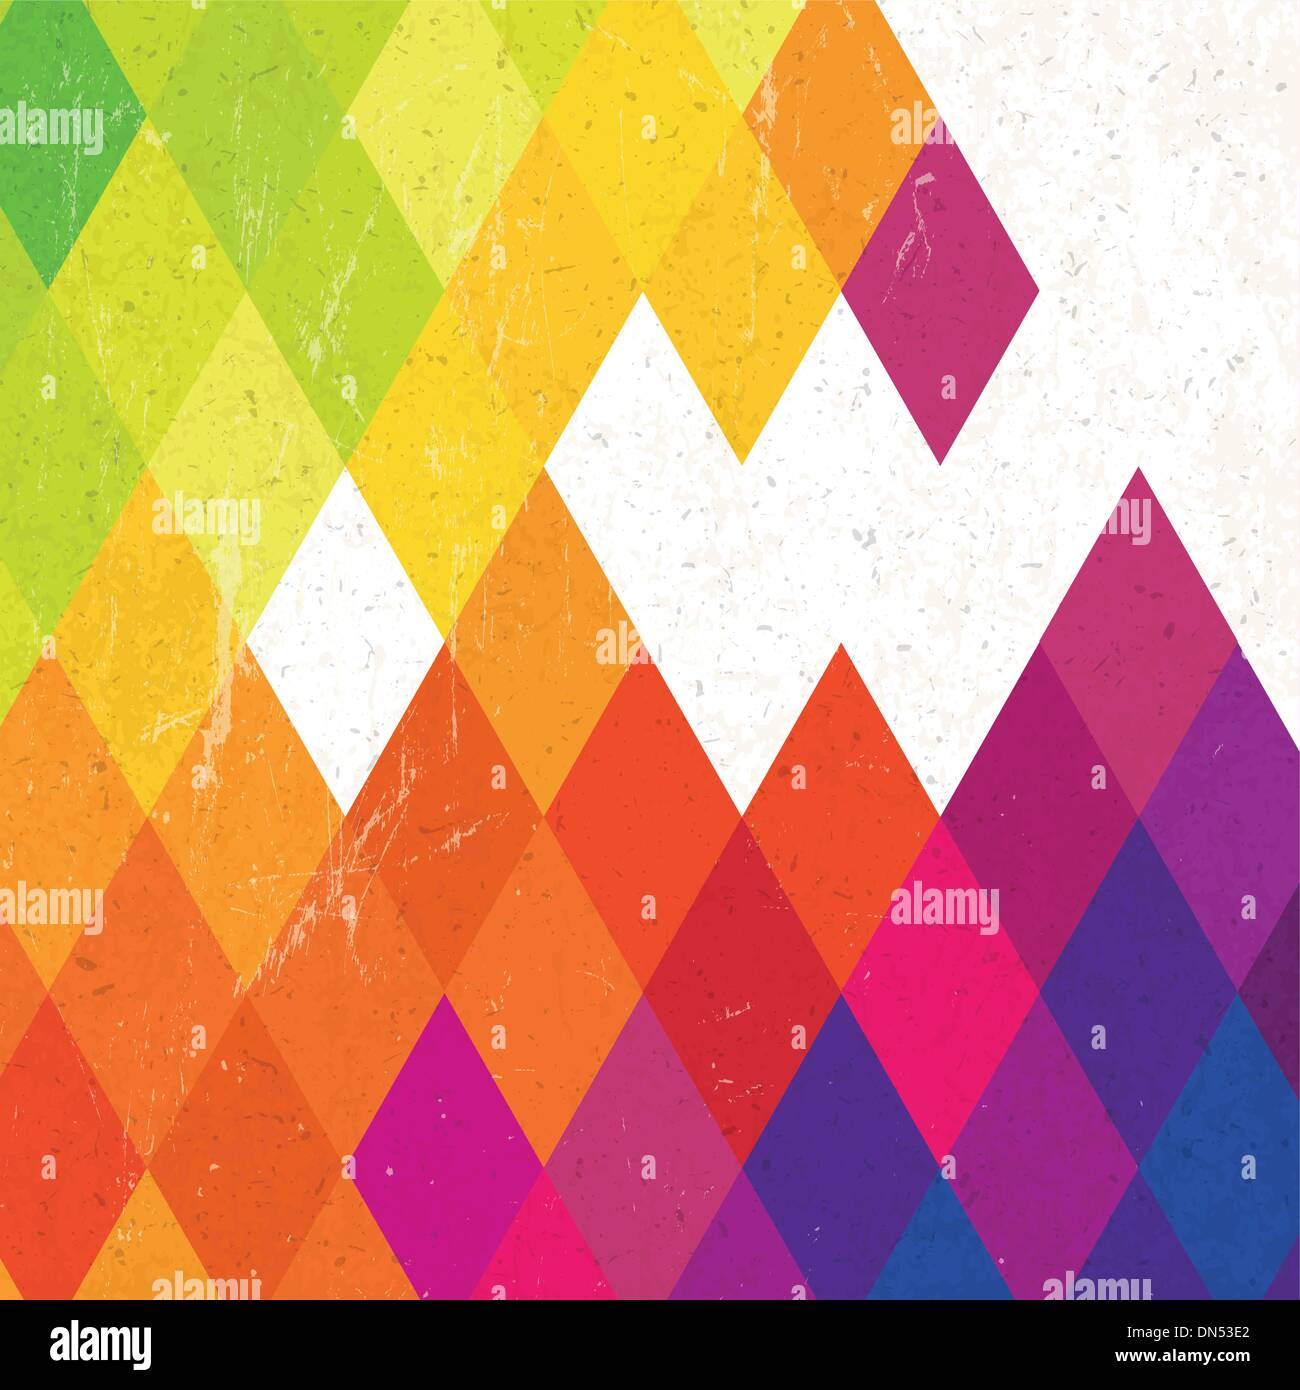 Retro colorful rhombus background, vector - Stock Image